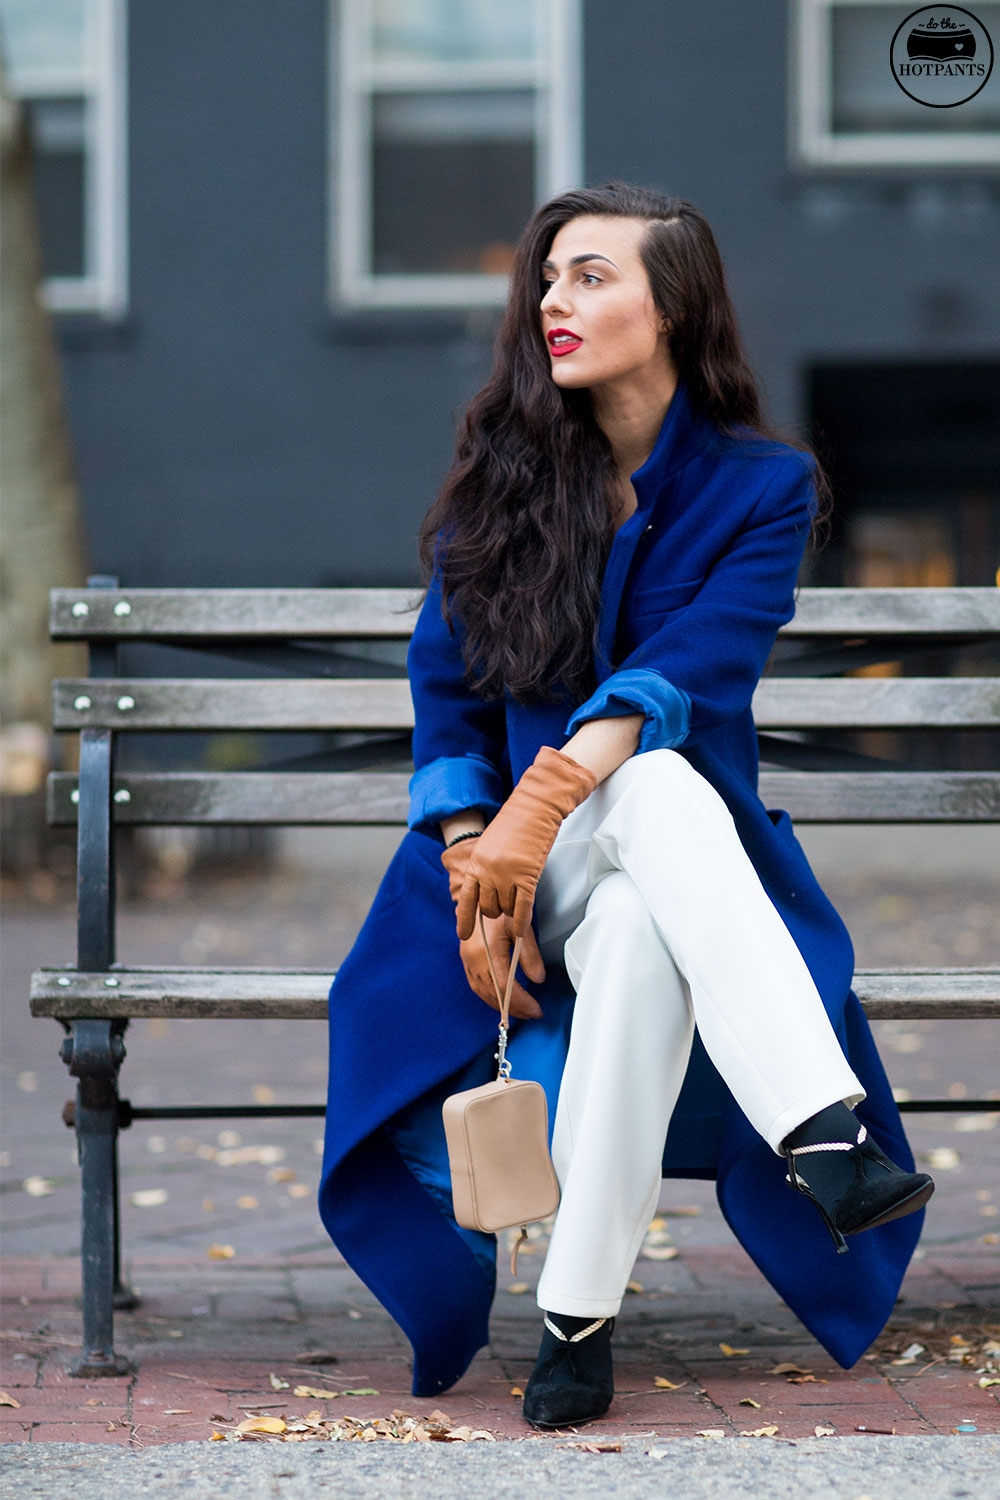 Do The Hotpants Dana Suchow White Jumpsuit Navu Blue Peacoat Trench Coat Jacket Red Lipstick Long Hair Woman MJJ_9794